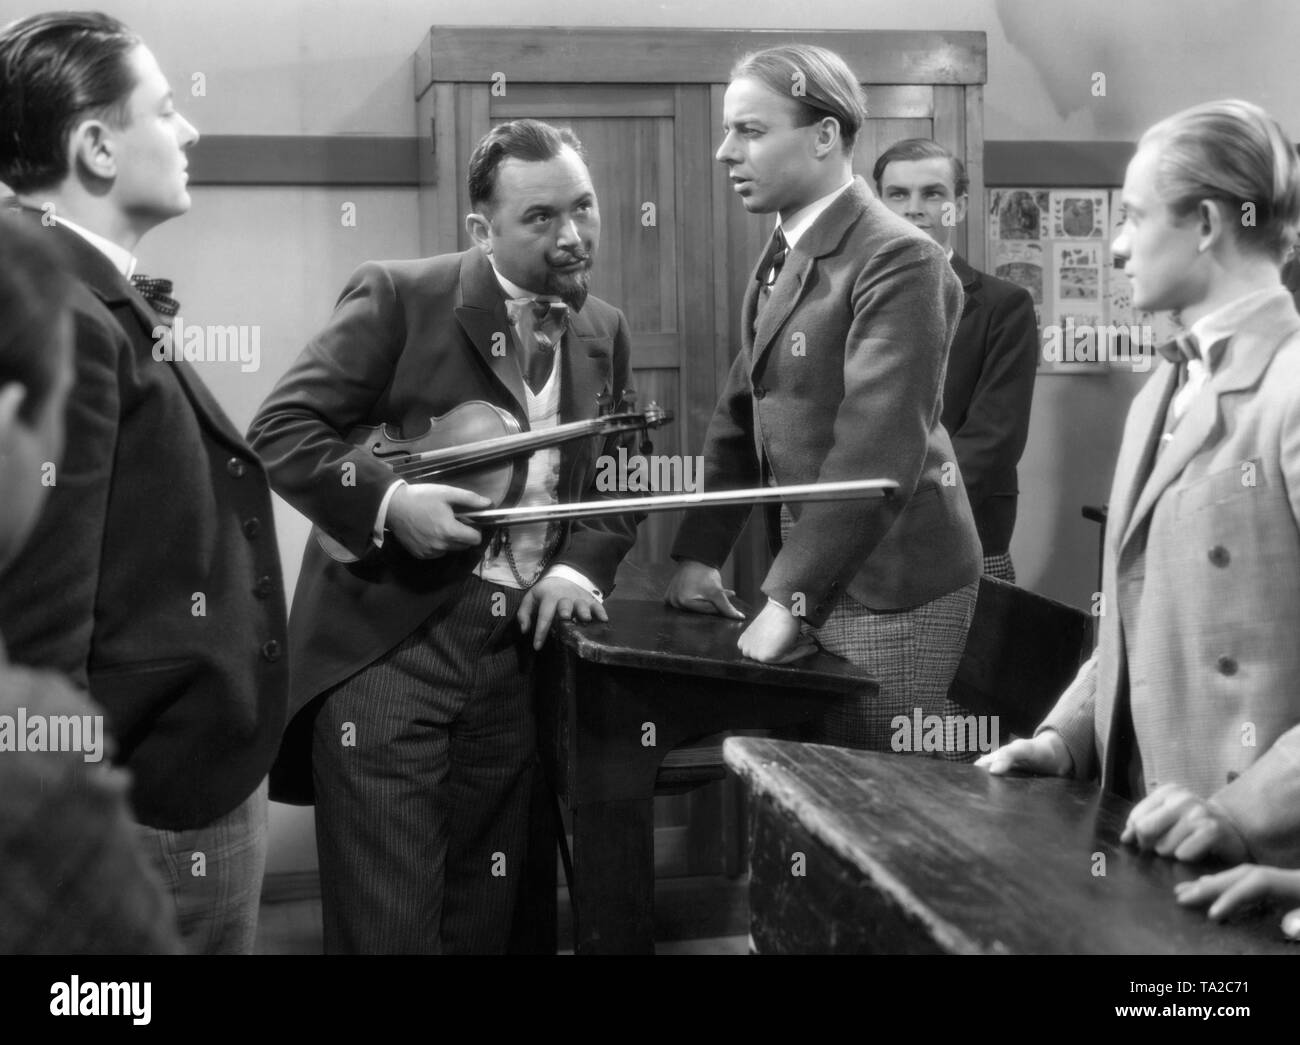 Oskar Sima (middle left) and Heinz Ruehmann (middle right) in the movie 'So ein Flegel' by Robert Stemmle. The comedy is the first film adaptation of the novel the 'Feuerzangenbowle'. In this film Ruehmann plays the brothers Pfeiffer who switch roles. In the last scene they stand together on the stage. - Stock Image